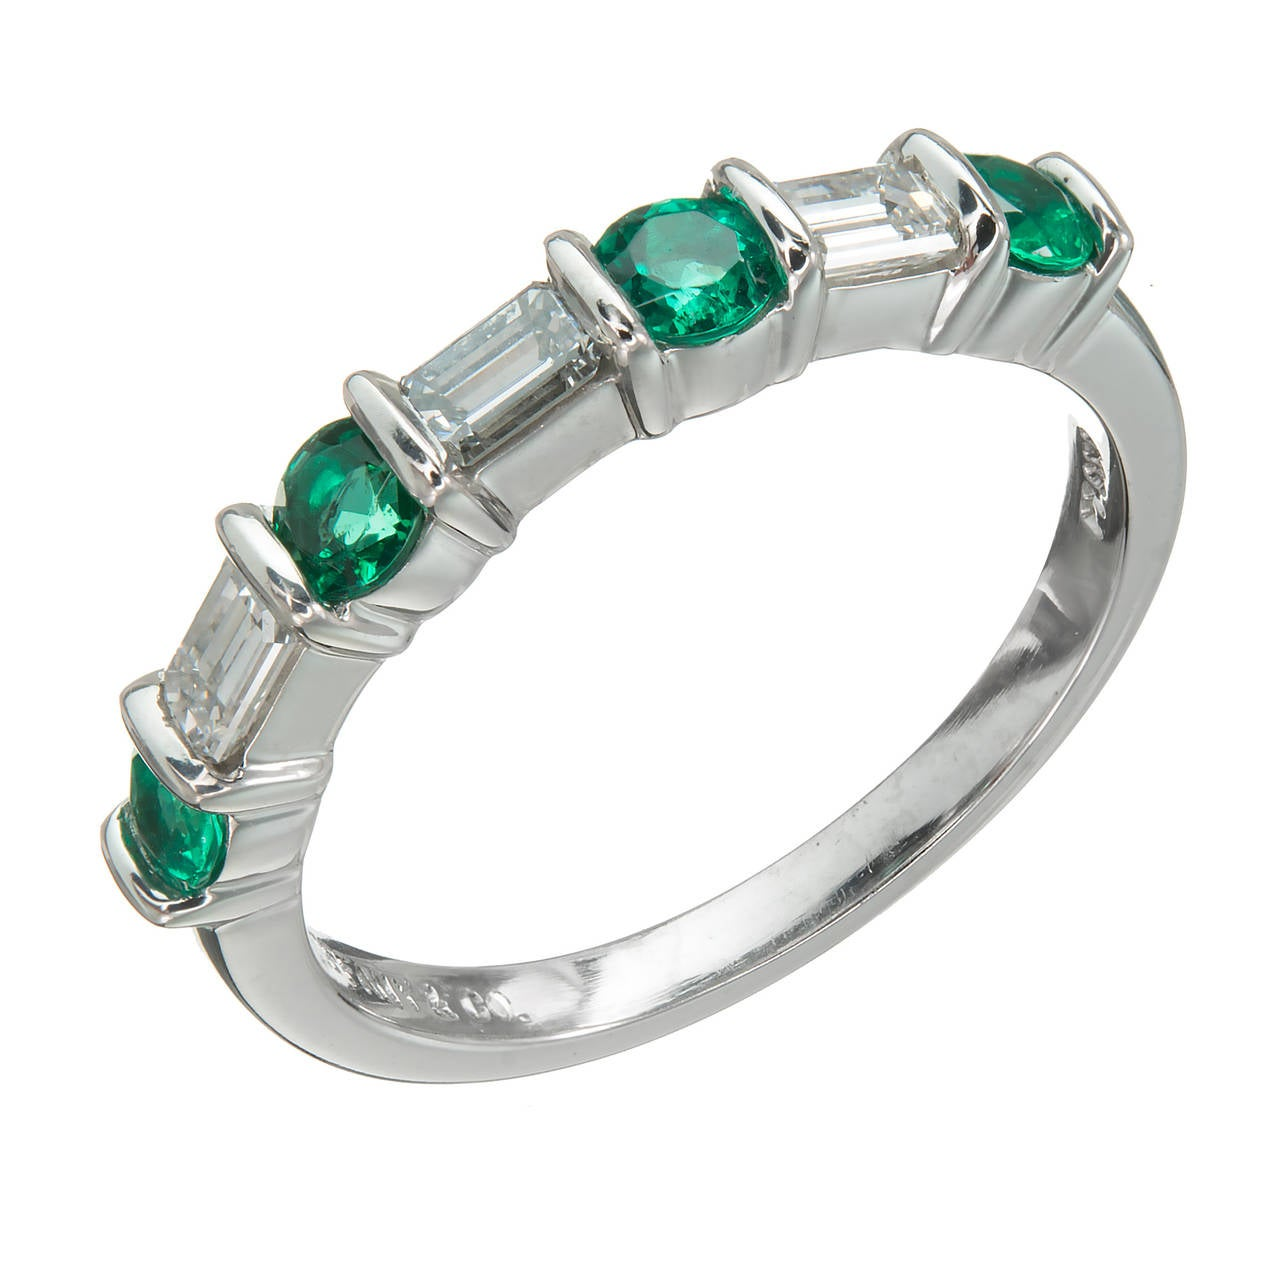 Tiffany and Co Emerald Diamond Platinum Wedding Band Ring at 1stdibs